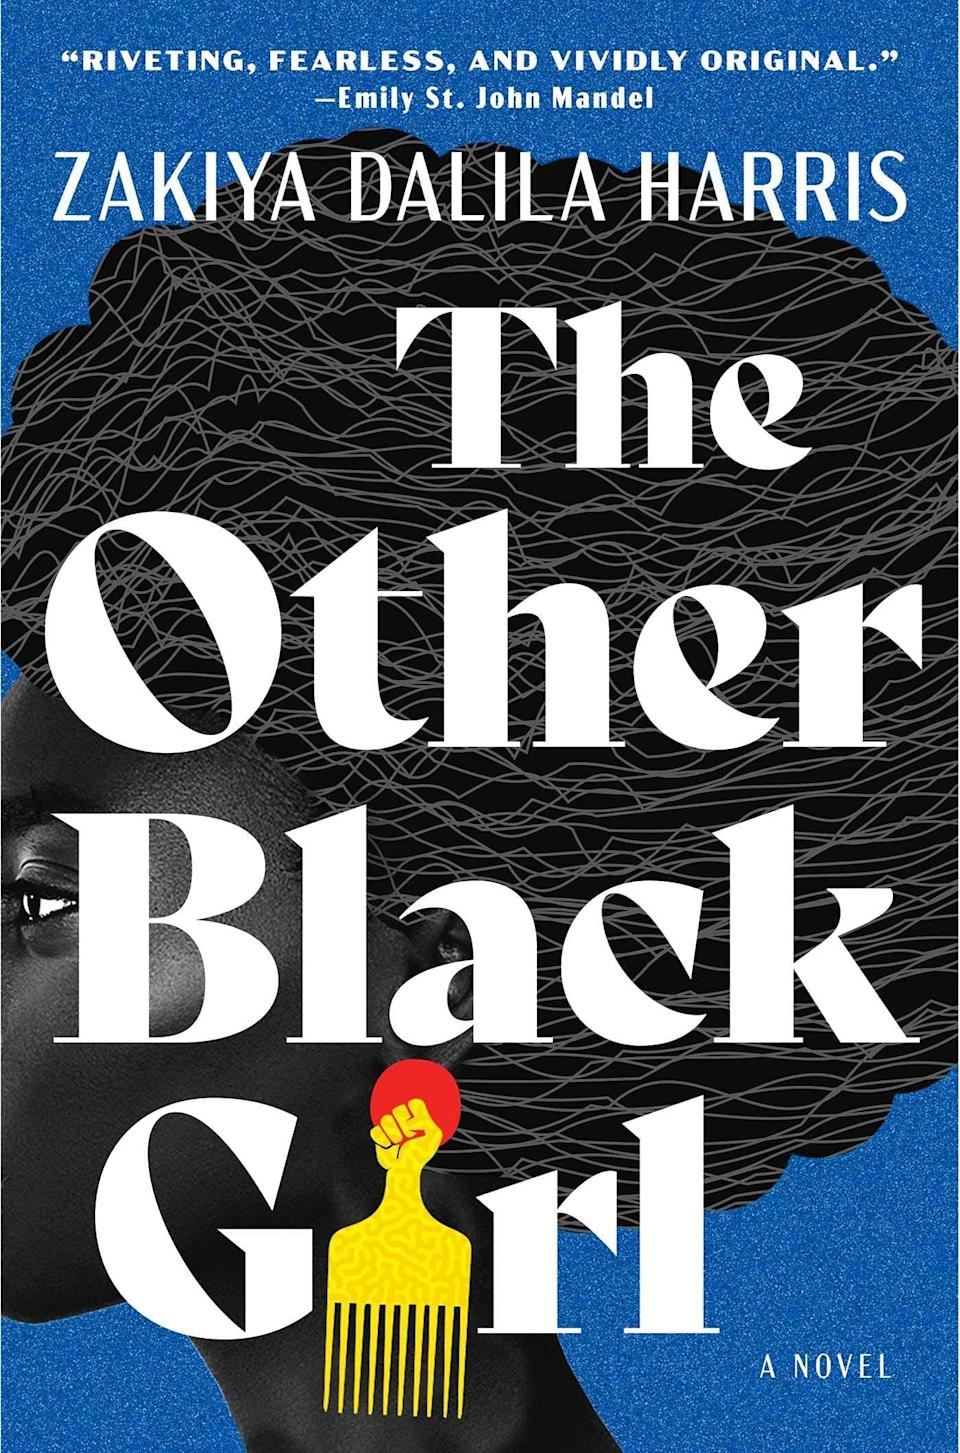 <p>Zakiya Dalila Harris's debut <span><strong>The Other Black Girl</strong></span> is a razor sharp thriller that speaks directly to the current social climate. As the only Black employee at a New York City publishing house, Nella Rogers is tired of dealing with the microaggressions and loneliness that come with her job. As a result, she's delighted when Harlem resident Hazel joins the company - at least she is until a series of frightening occurrances suggest someone is determined to make her leave her job behind. </p> <p><em>Out June 1</em></p>